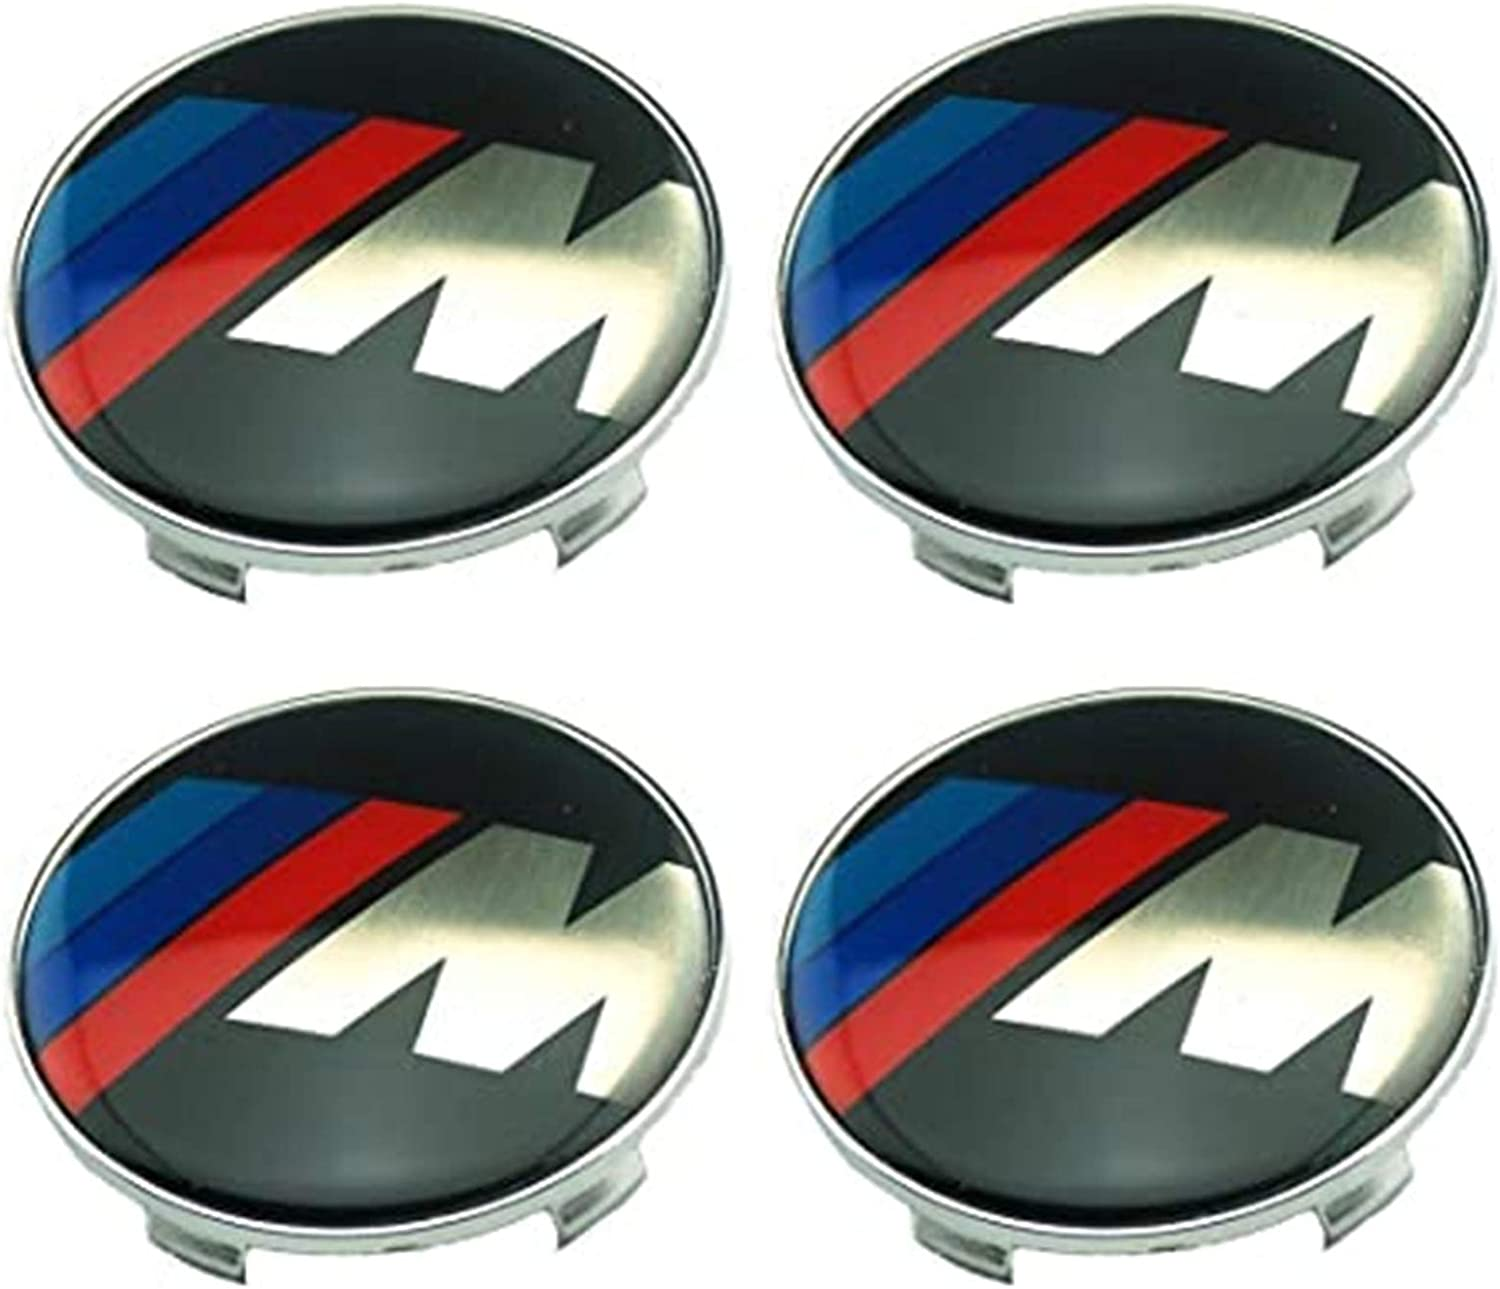 1 xianwei 4pcs 68mm M Car Styling Accessories Emblem Badge Sticker Wheel Hub Caps Centre Cover for M X1 X 3 X5 X 6 M3 M5 M6 E46 E39 E36 E60 E34 E90 E65 E70 E53 E87